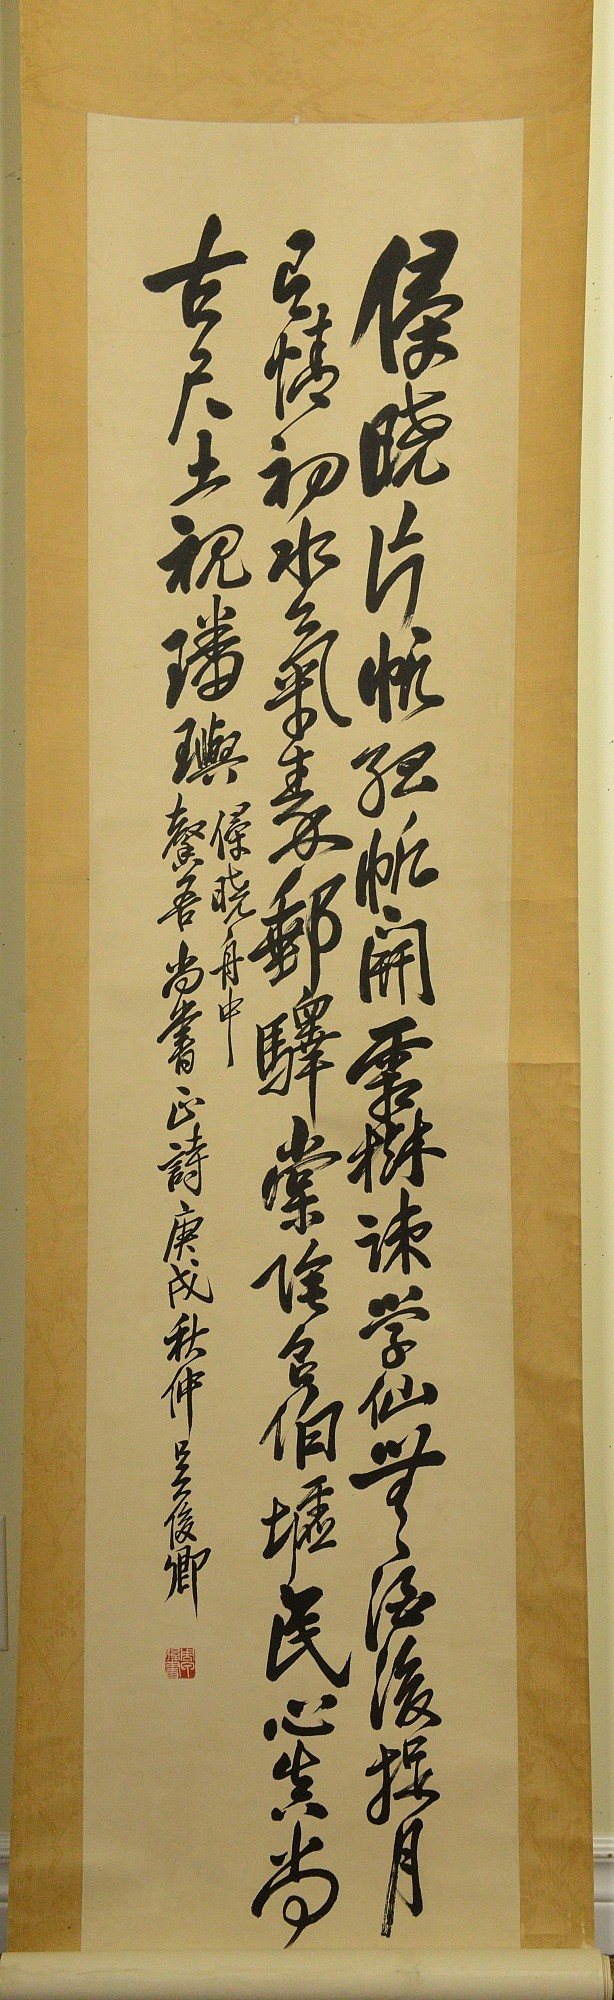 Chinese Calligraphy Signed Wu Changshuo